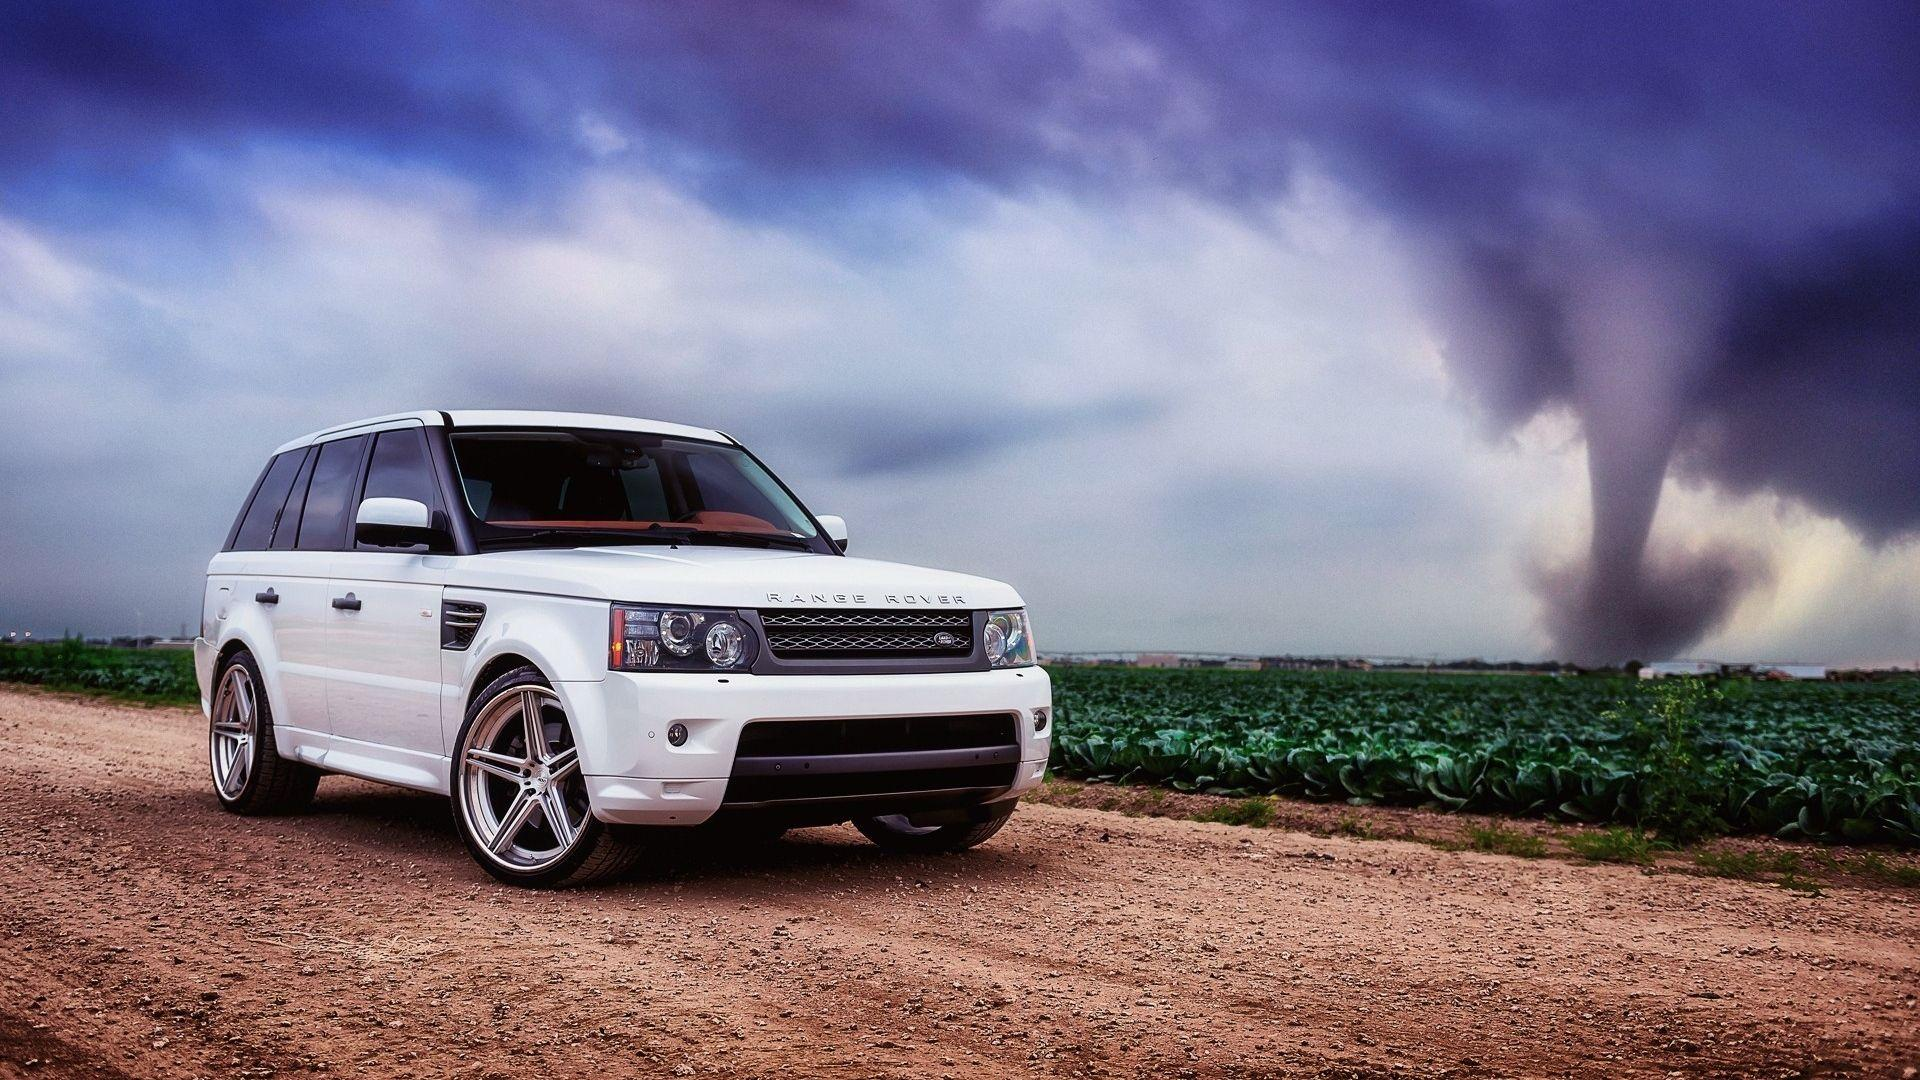 Suv Cars Wallpapers Wallpaper Cave